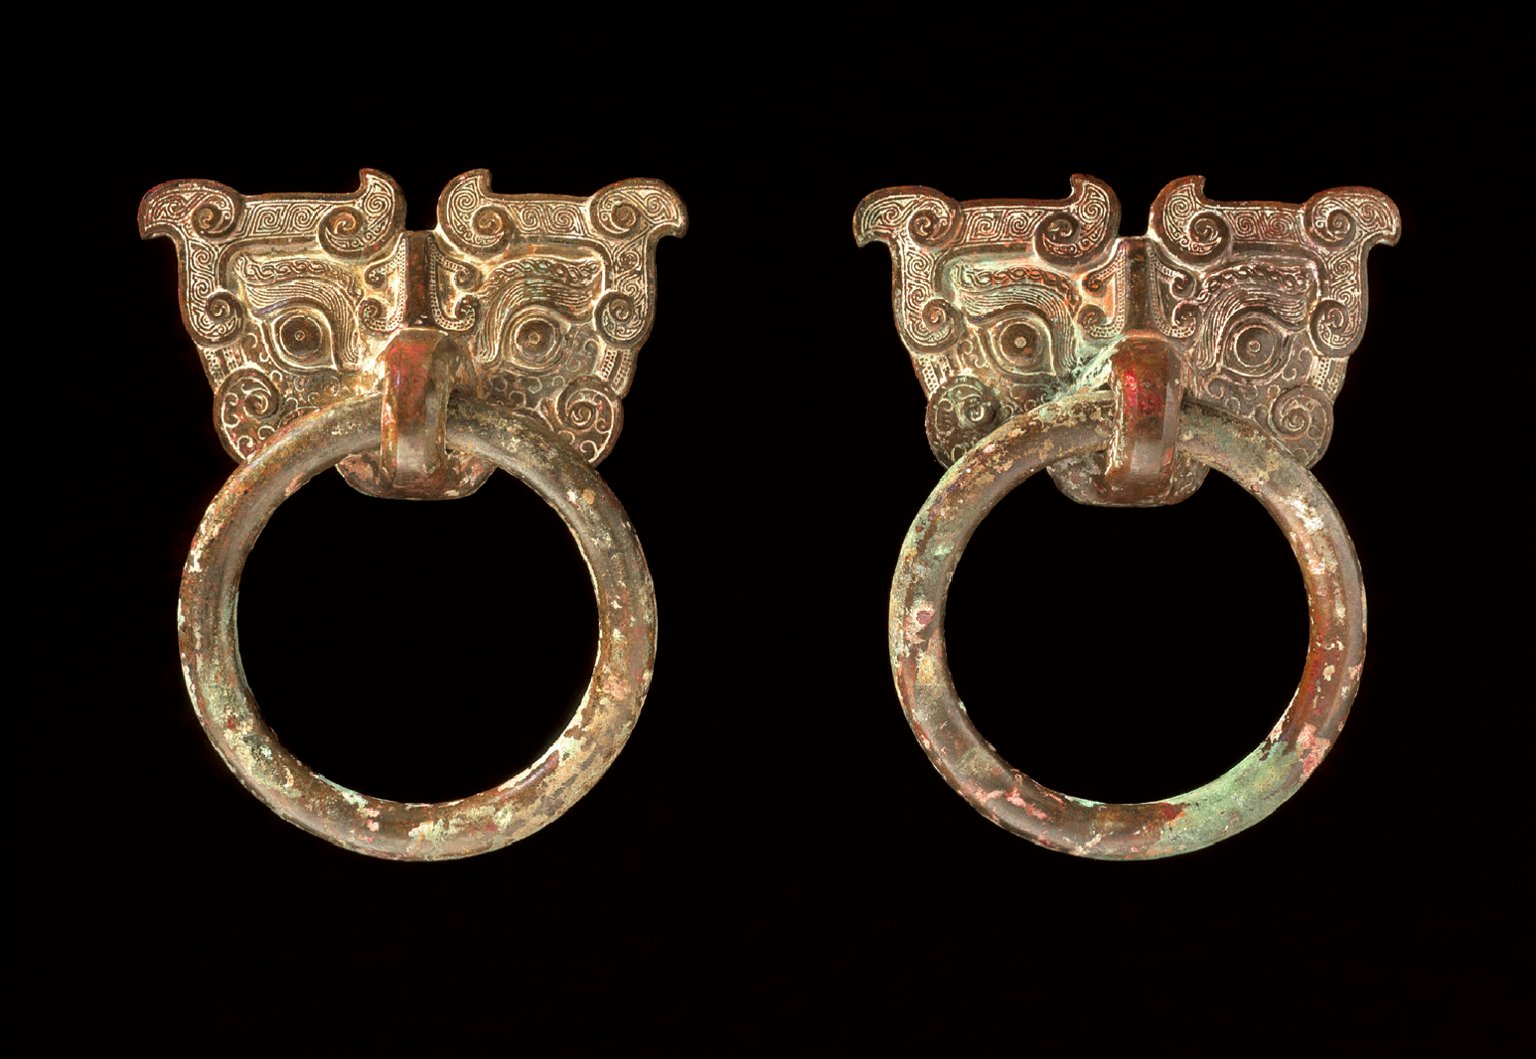 Mask Mounts with Ring Handles